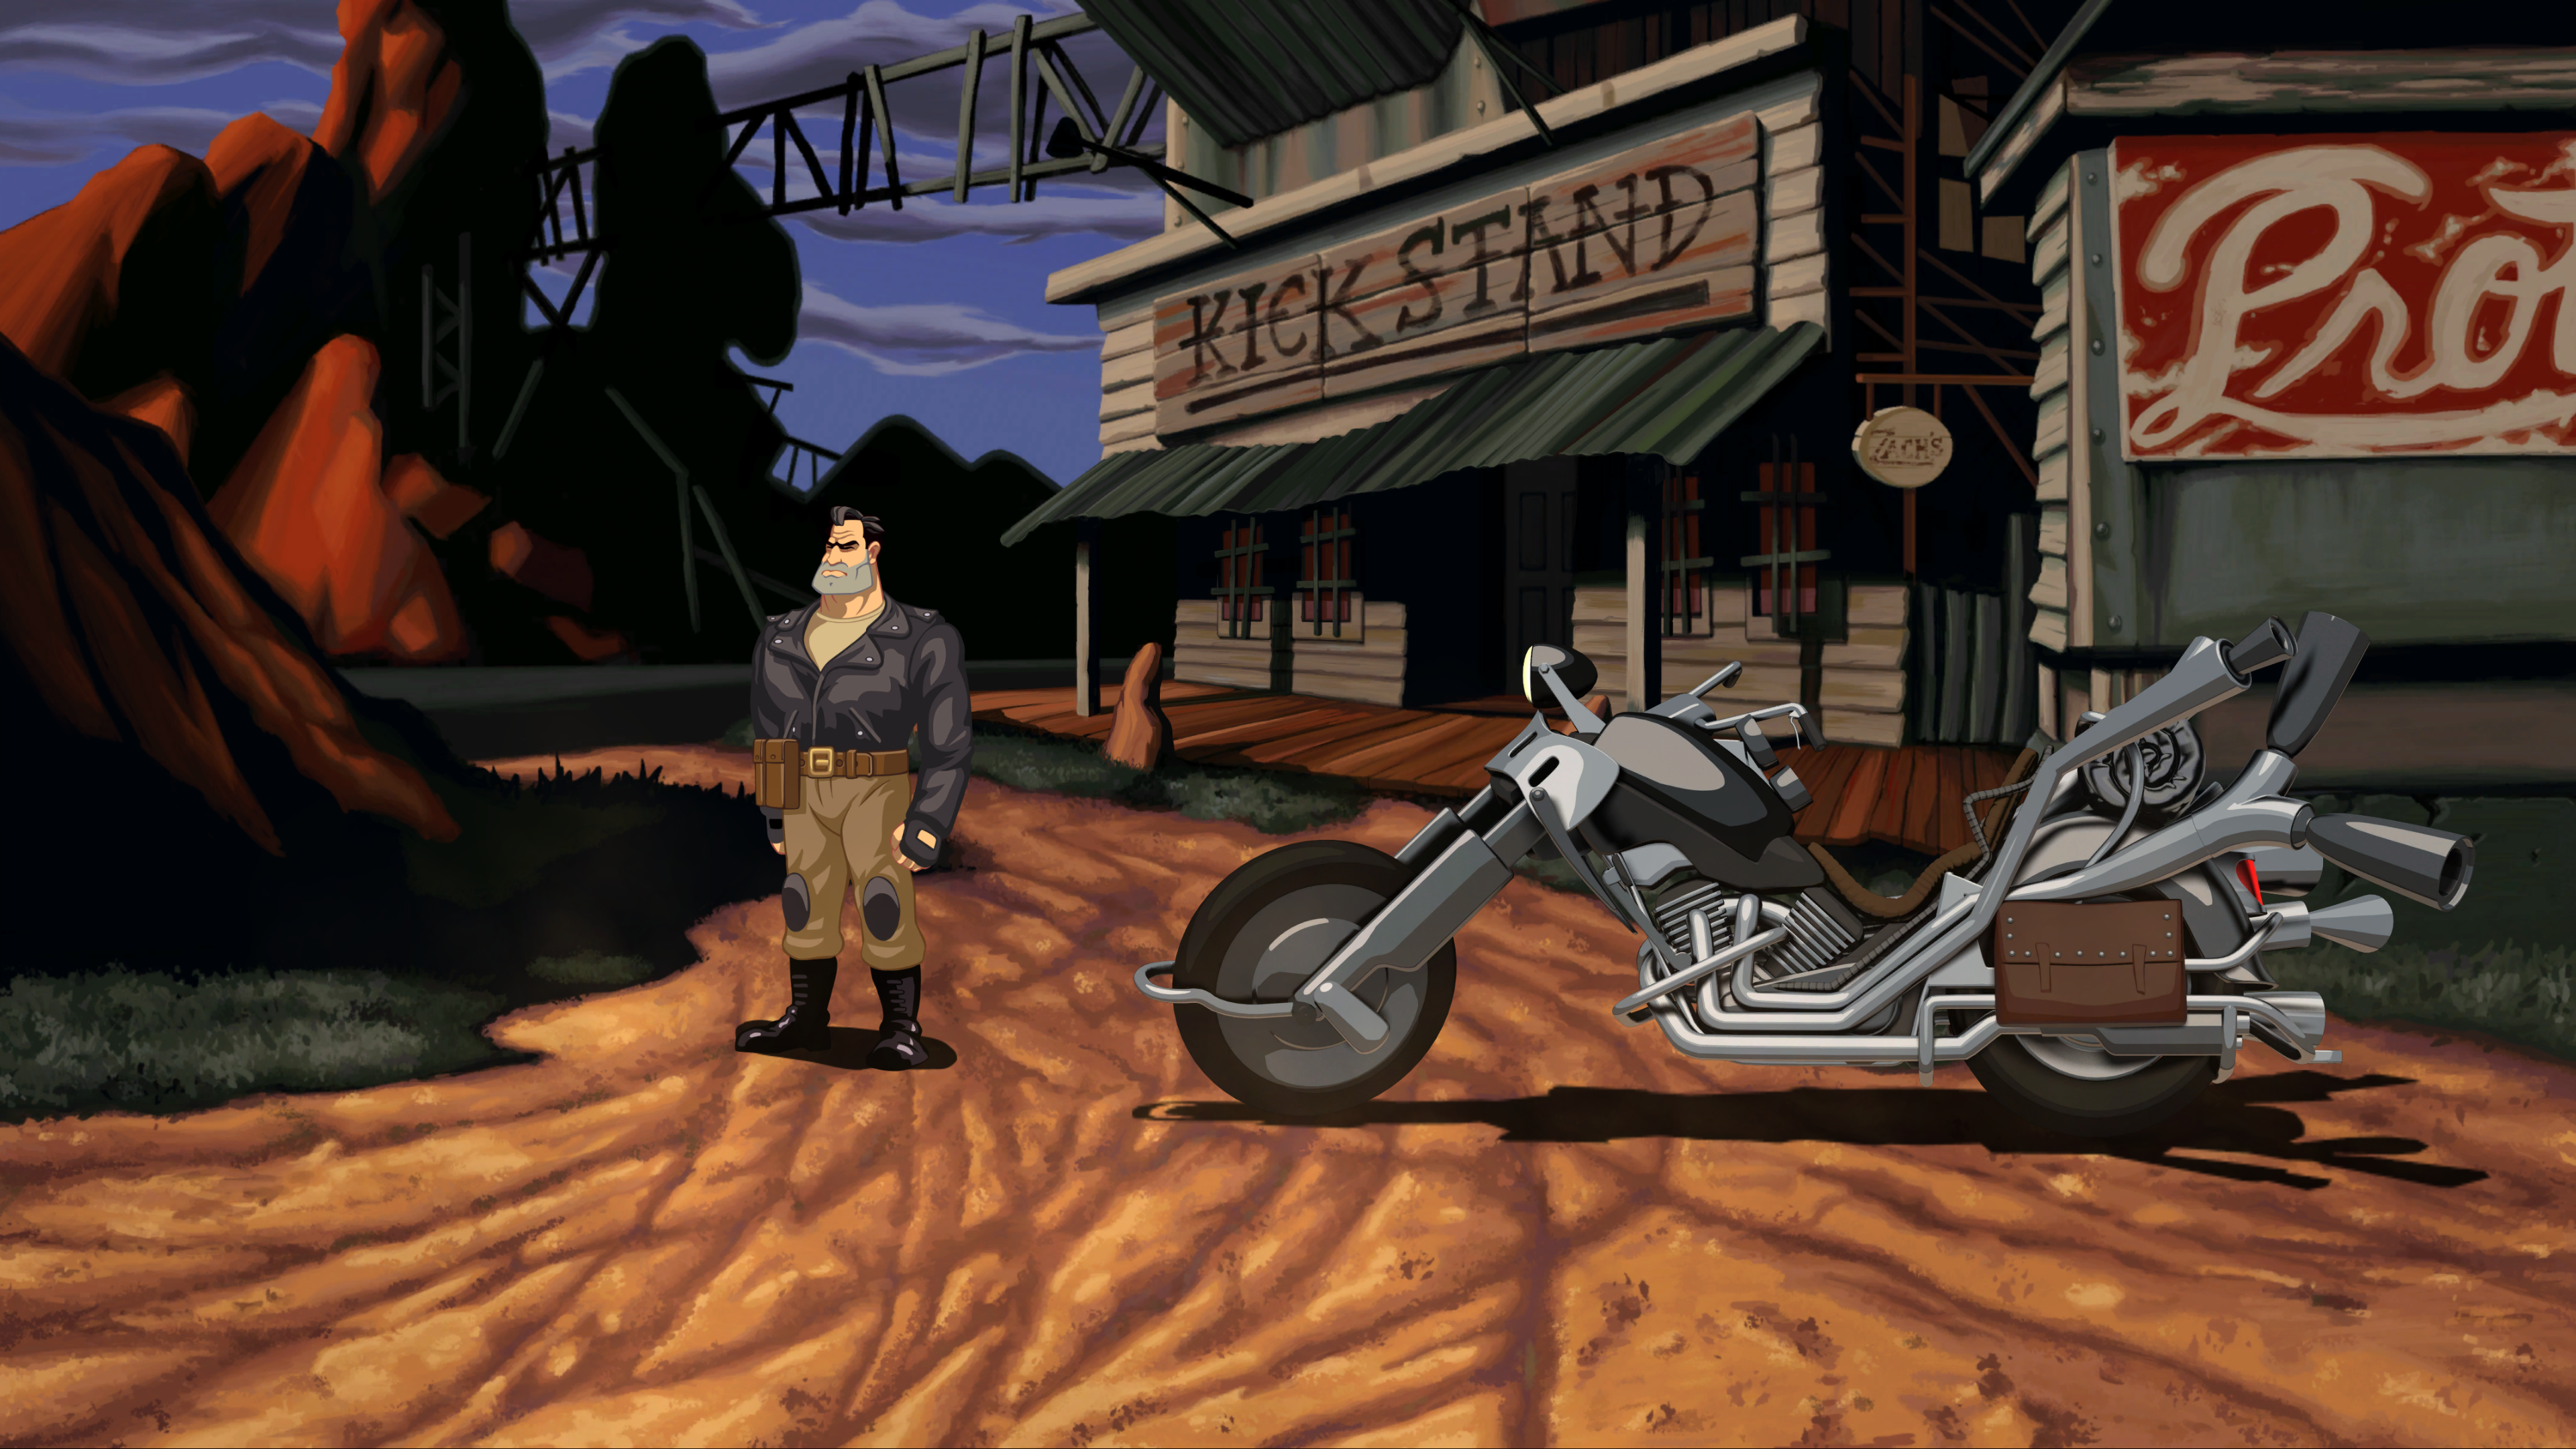 Full throttle images 46